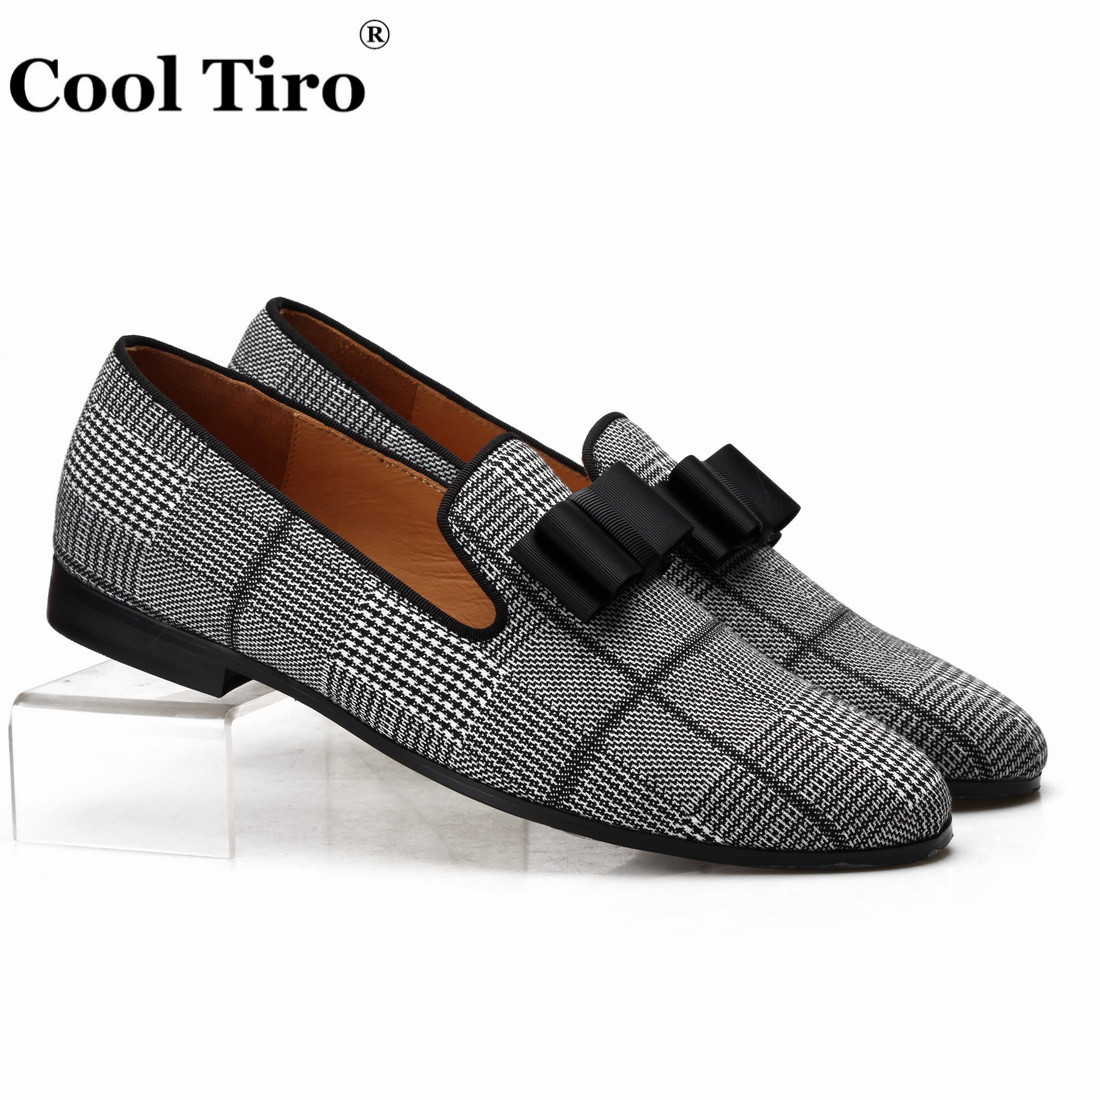 Cool Tiro Gingham Canvas Loafers Men s Moccasins Smoking Slippers Wedding party Dress Shoes Genuine Leather